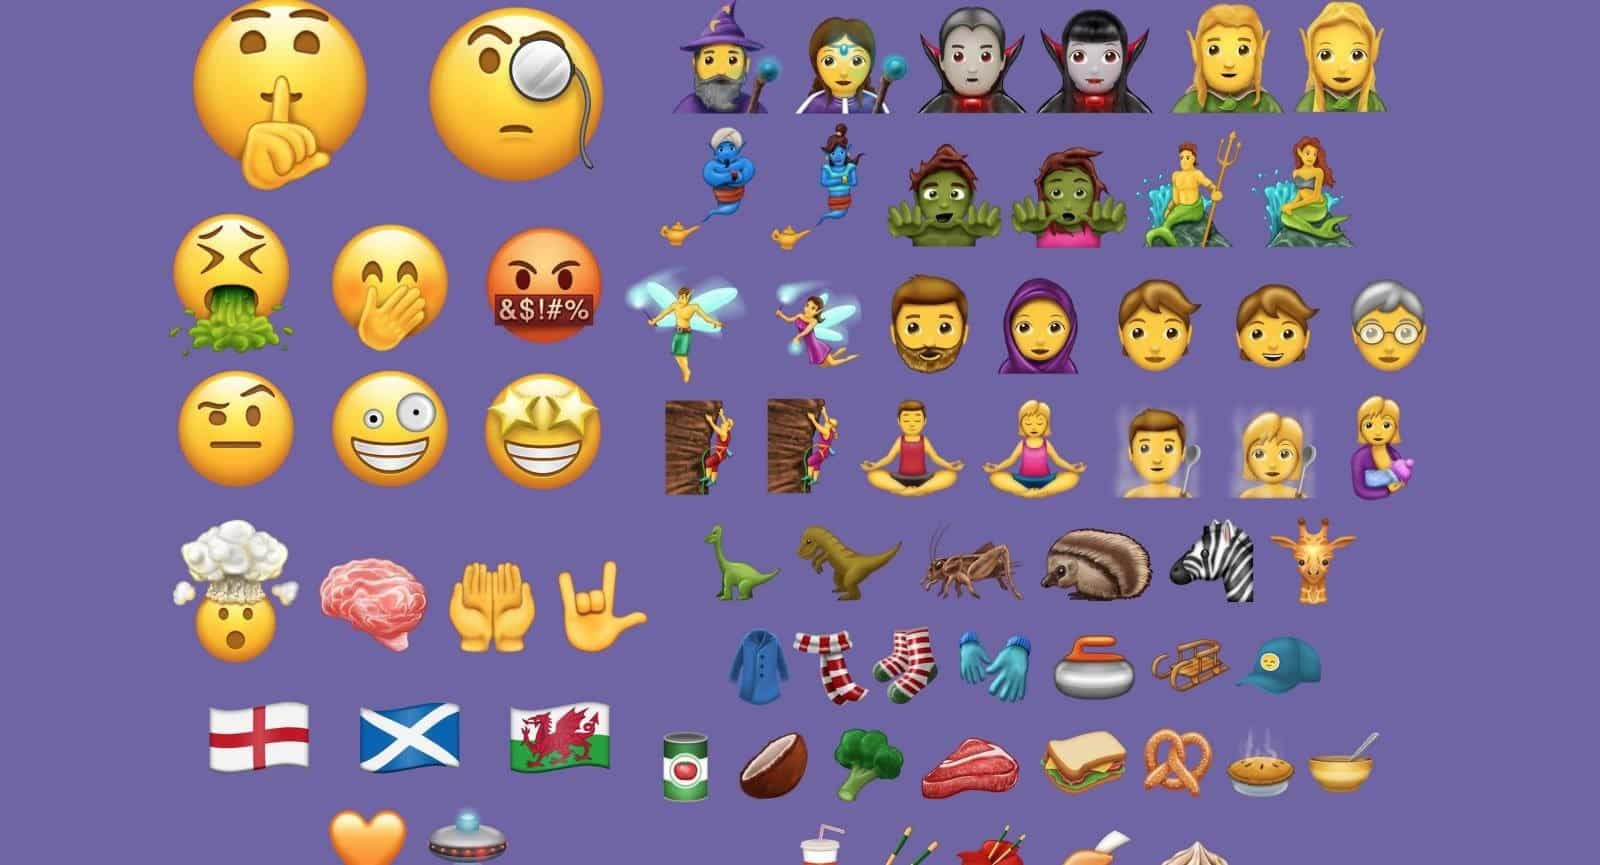 Unicode Consortium announcing The Unicode® Standard, Version 10.0 which has officially added 56 new emoji characters which is likely to come with the final release of iOS 11